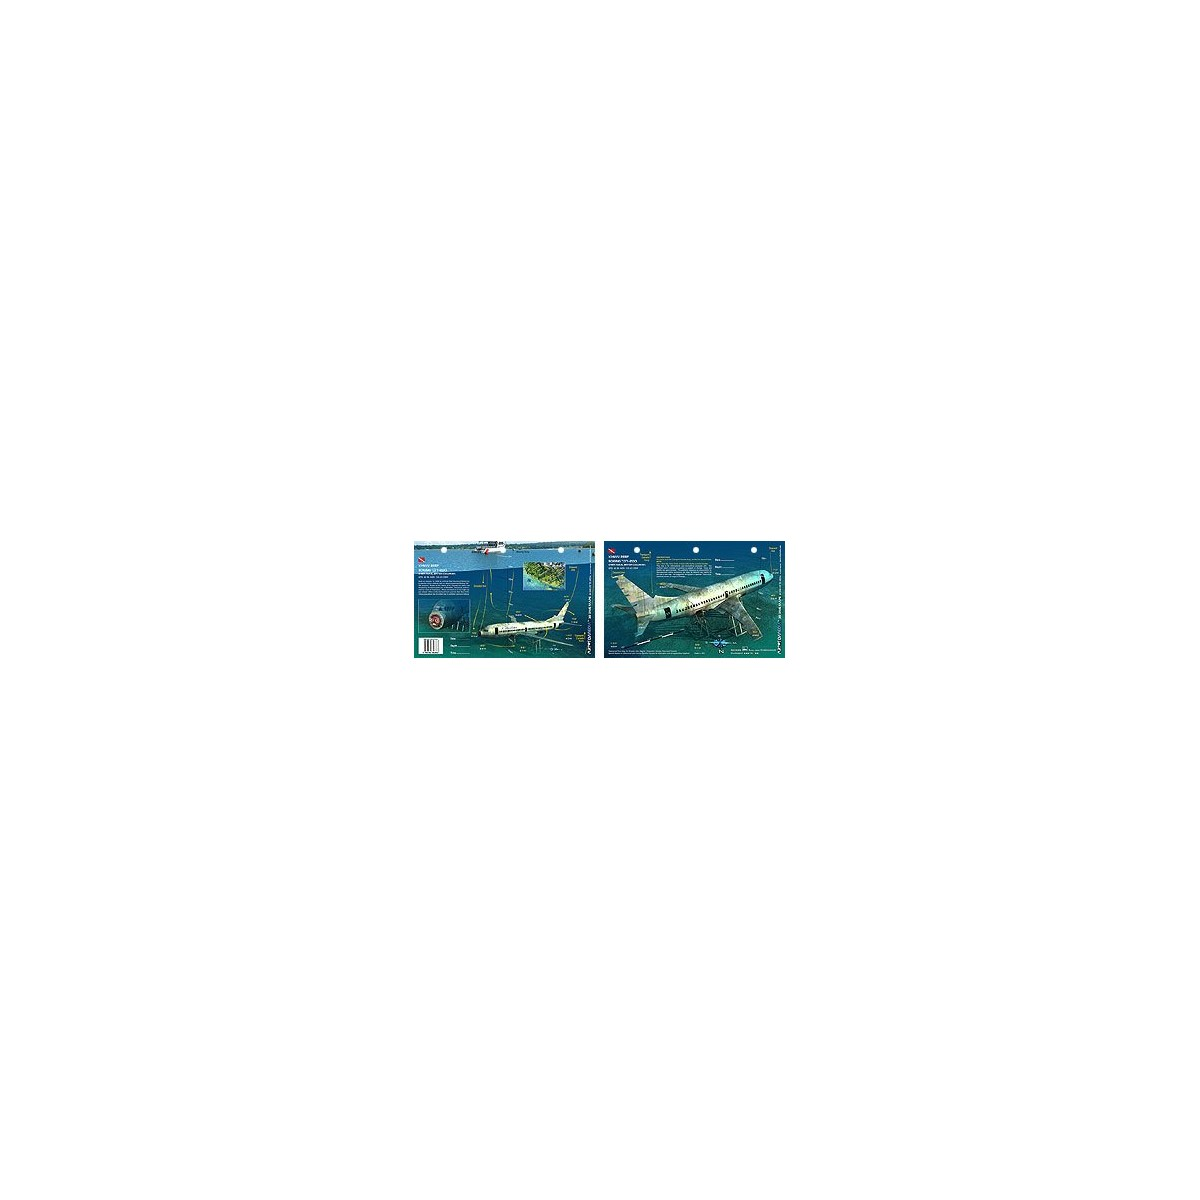 Xihwu Boeing 737 in Chemainus, British Columbia, Canada (8.5 x 5.5 Inches) - New Art to Media Underwater Waterproof 3D Dive Site